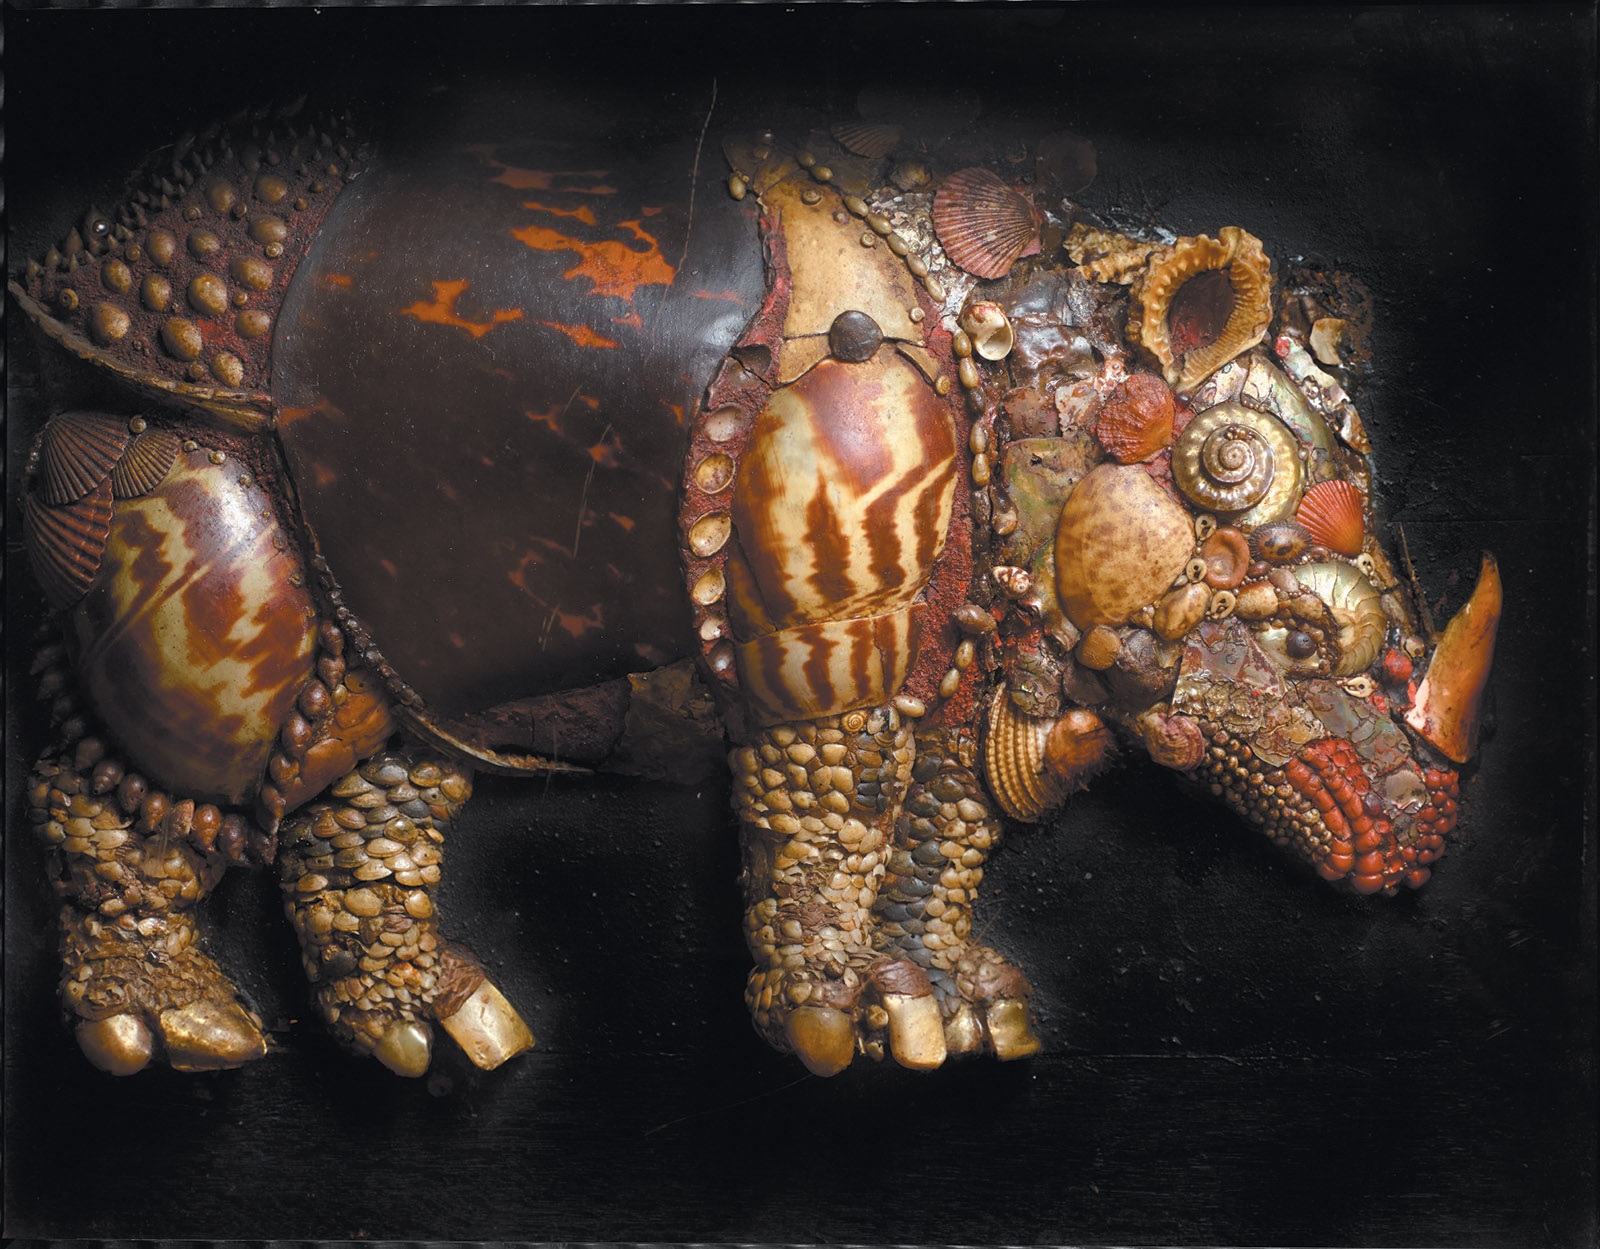 A rhinoceros made of tortoiseshell, coral, pearls, and seashells, based on a woodcut by ­Albrecht Dürer, early seventeenth century